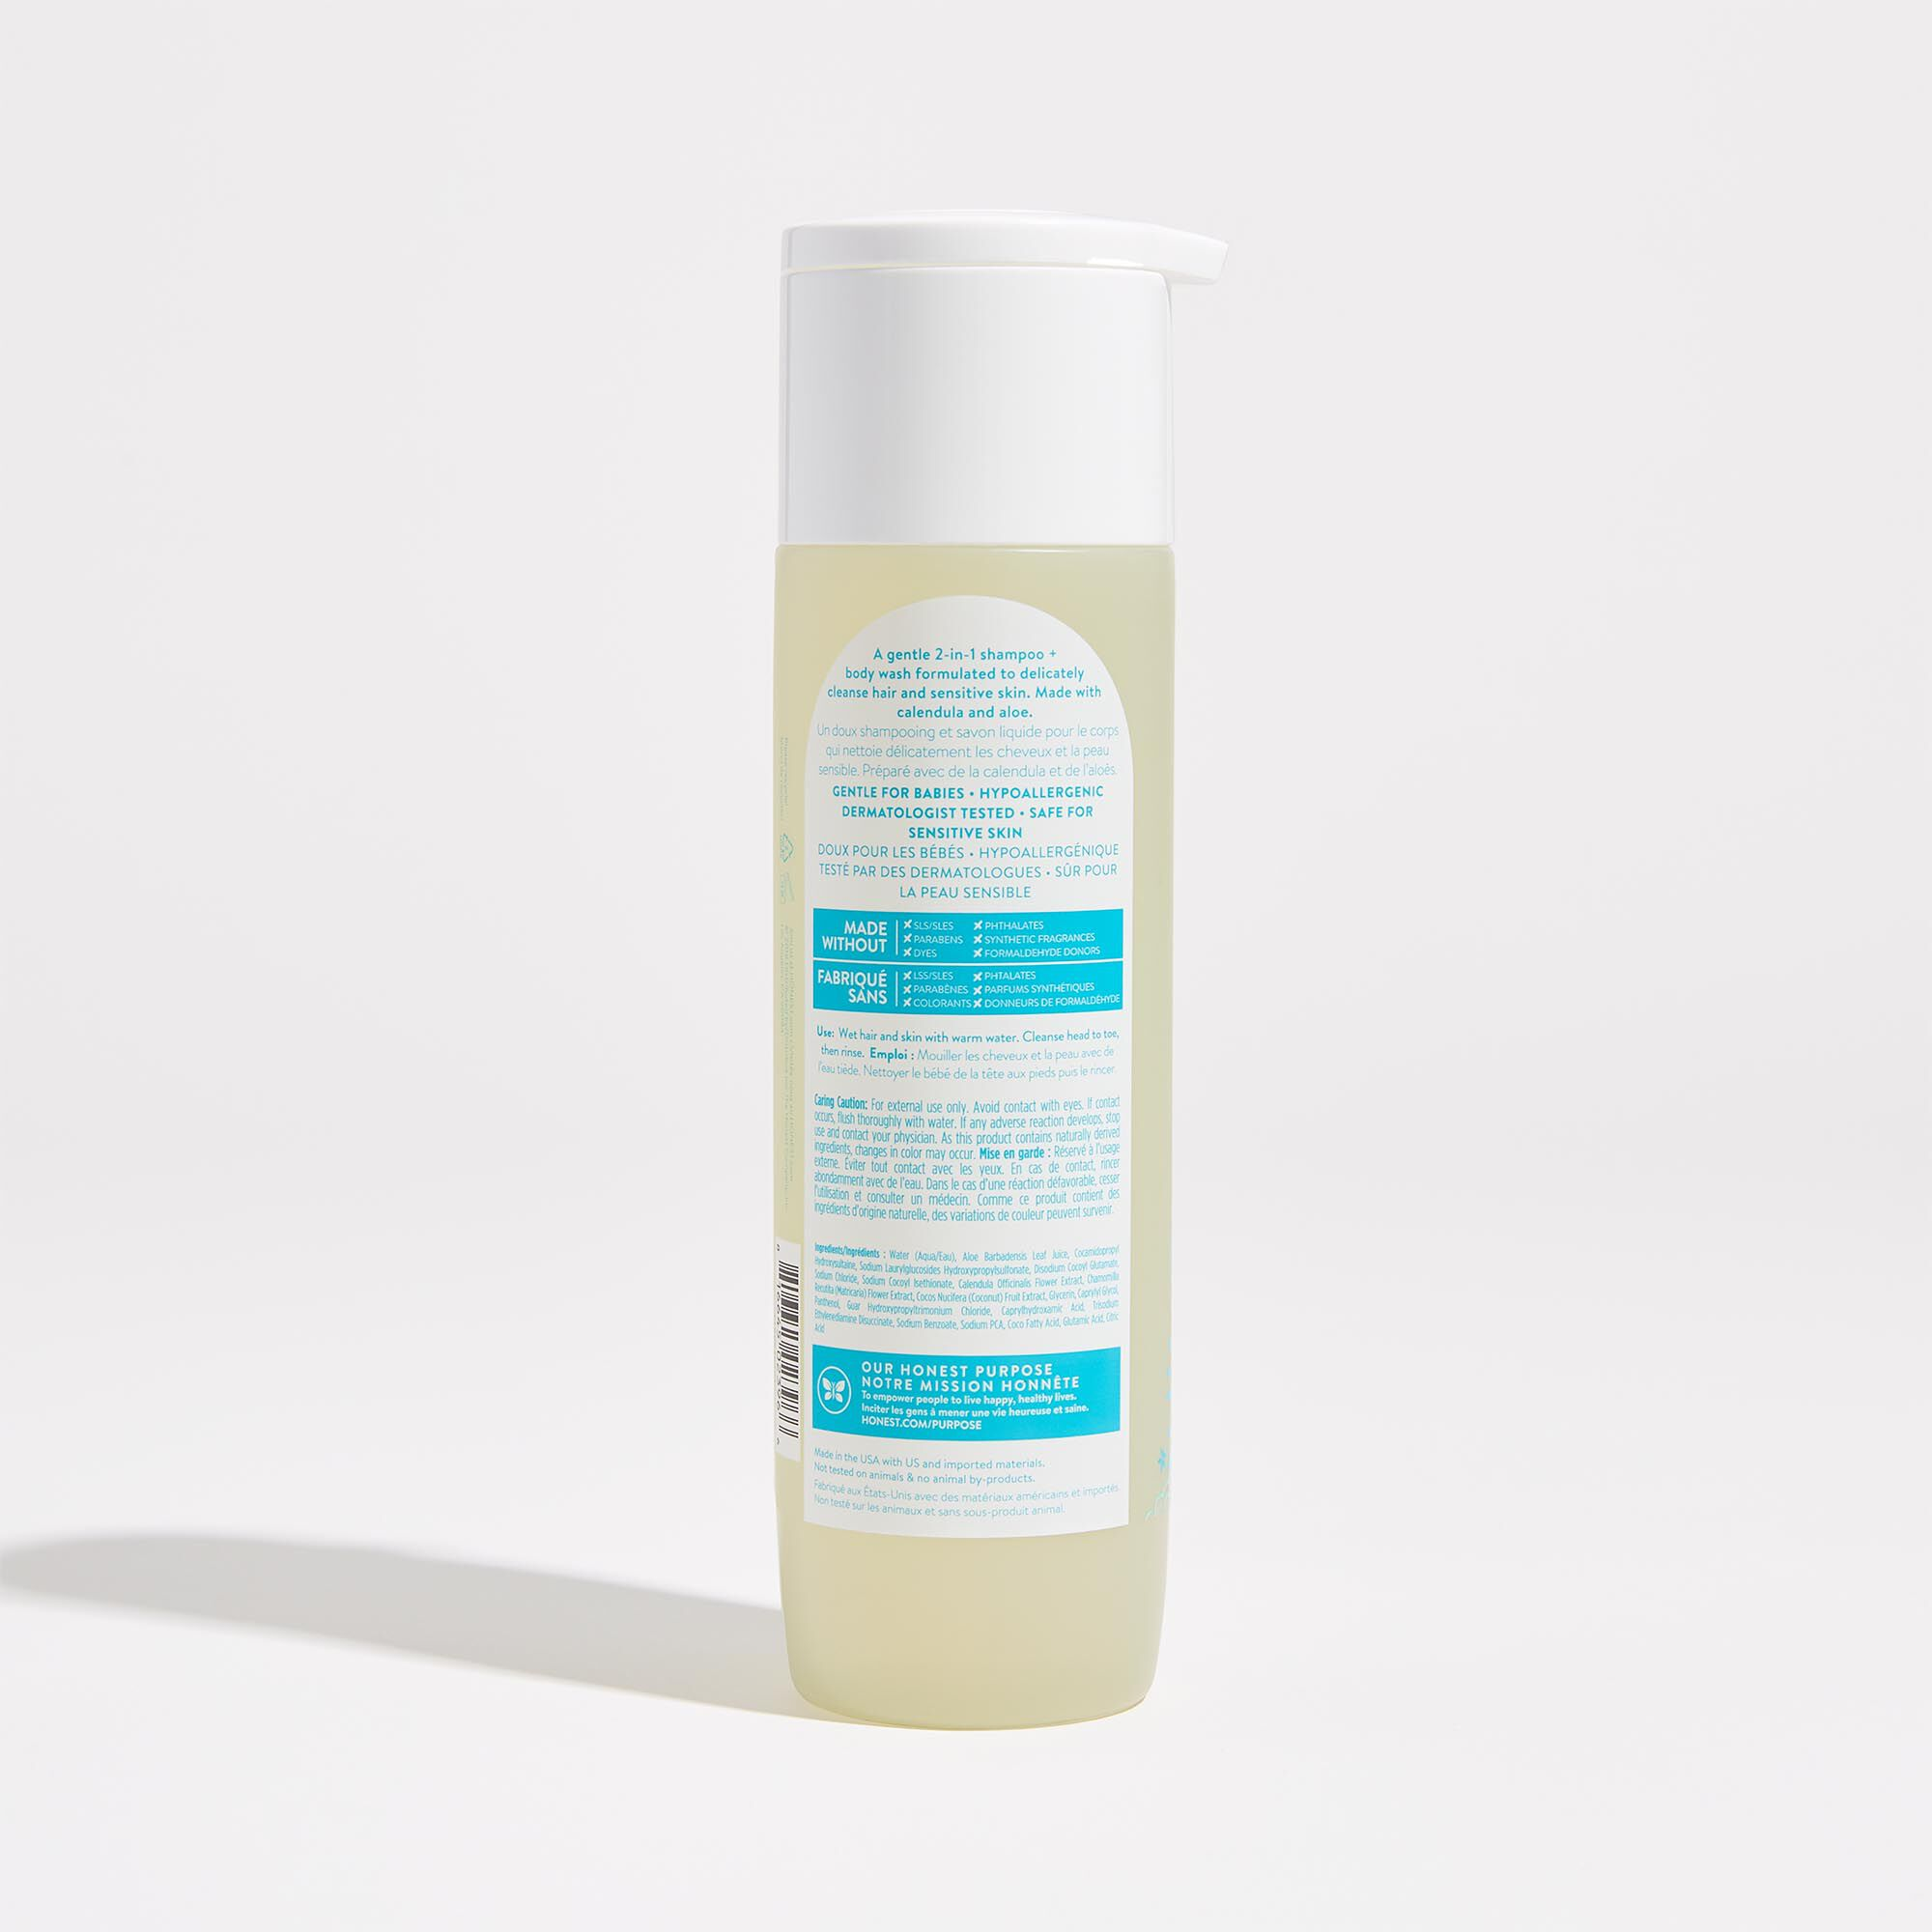 Fragrance Free Scented Shampoo and Body Wash Back of Product